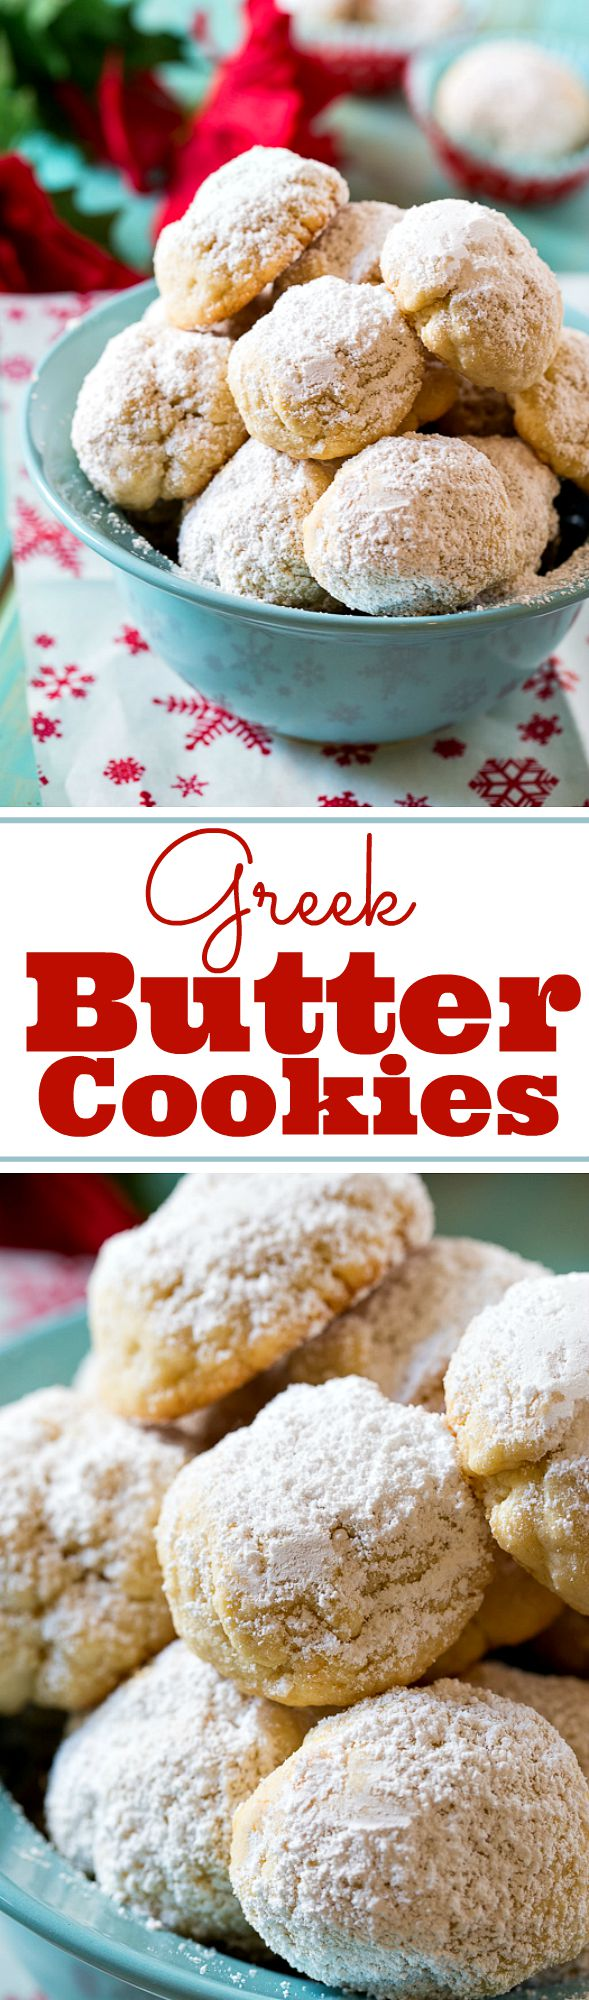 Greek Butter Cookies- dusted in powdered sugar they look just like snowballs.